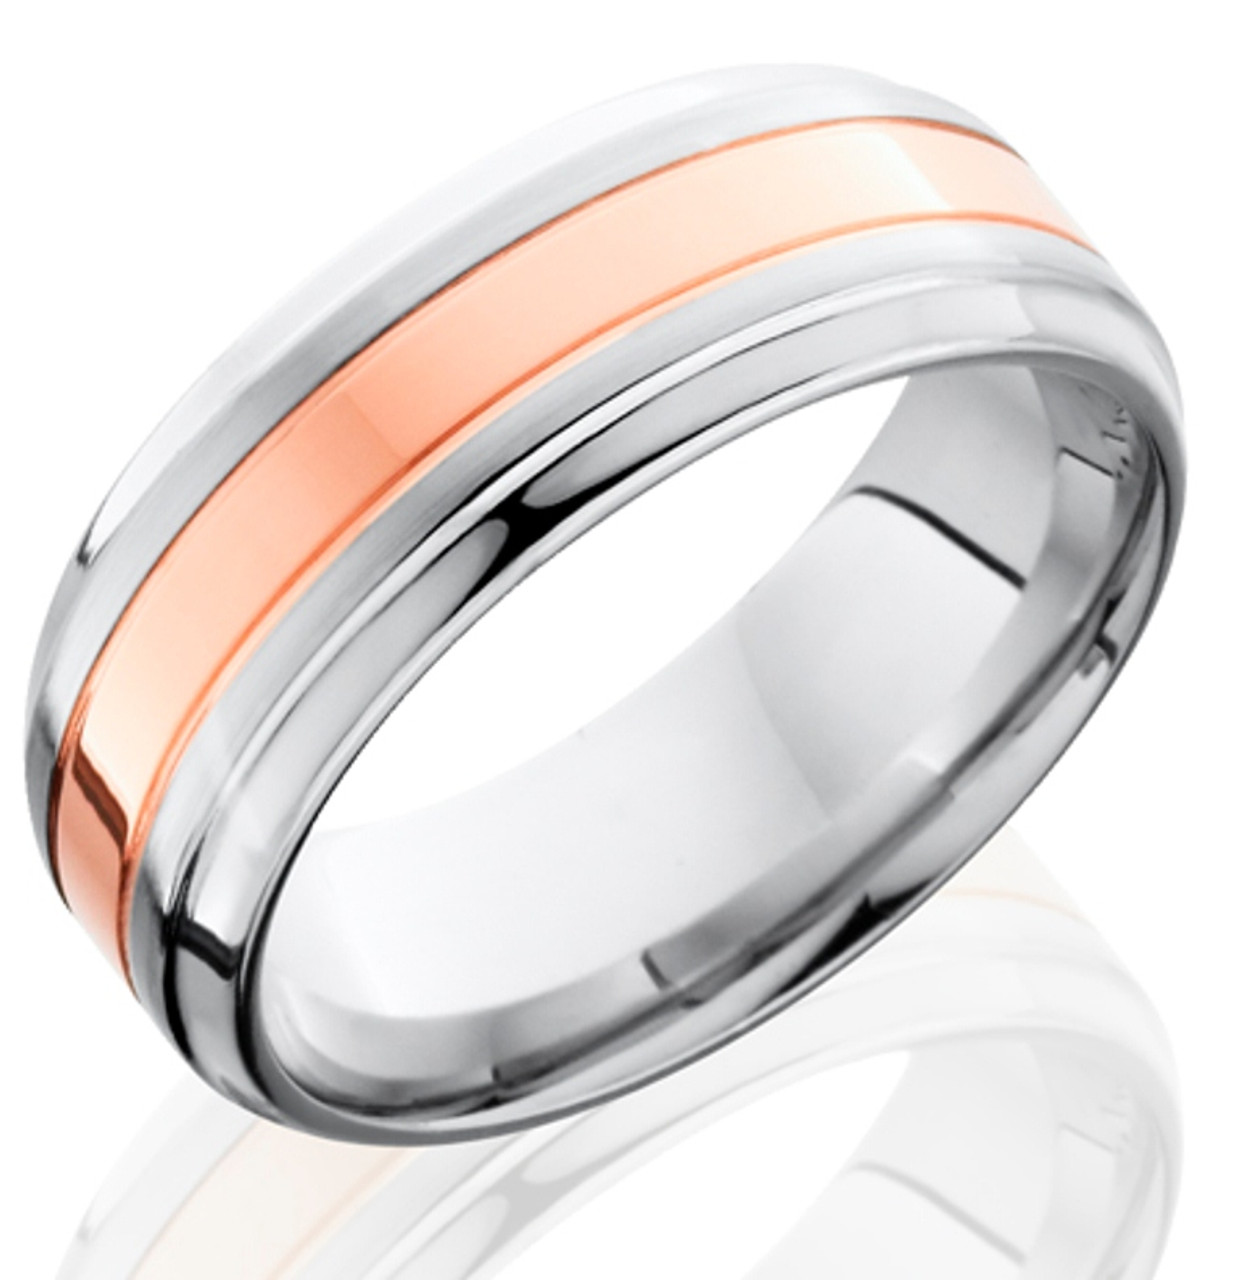 Mens Grooved Edge Cobalt Wedding Ring With Rose Gold Inlay